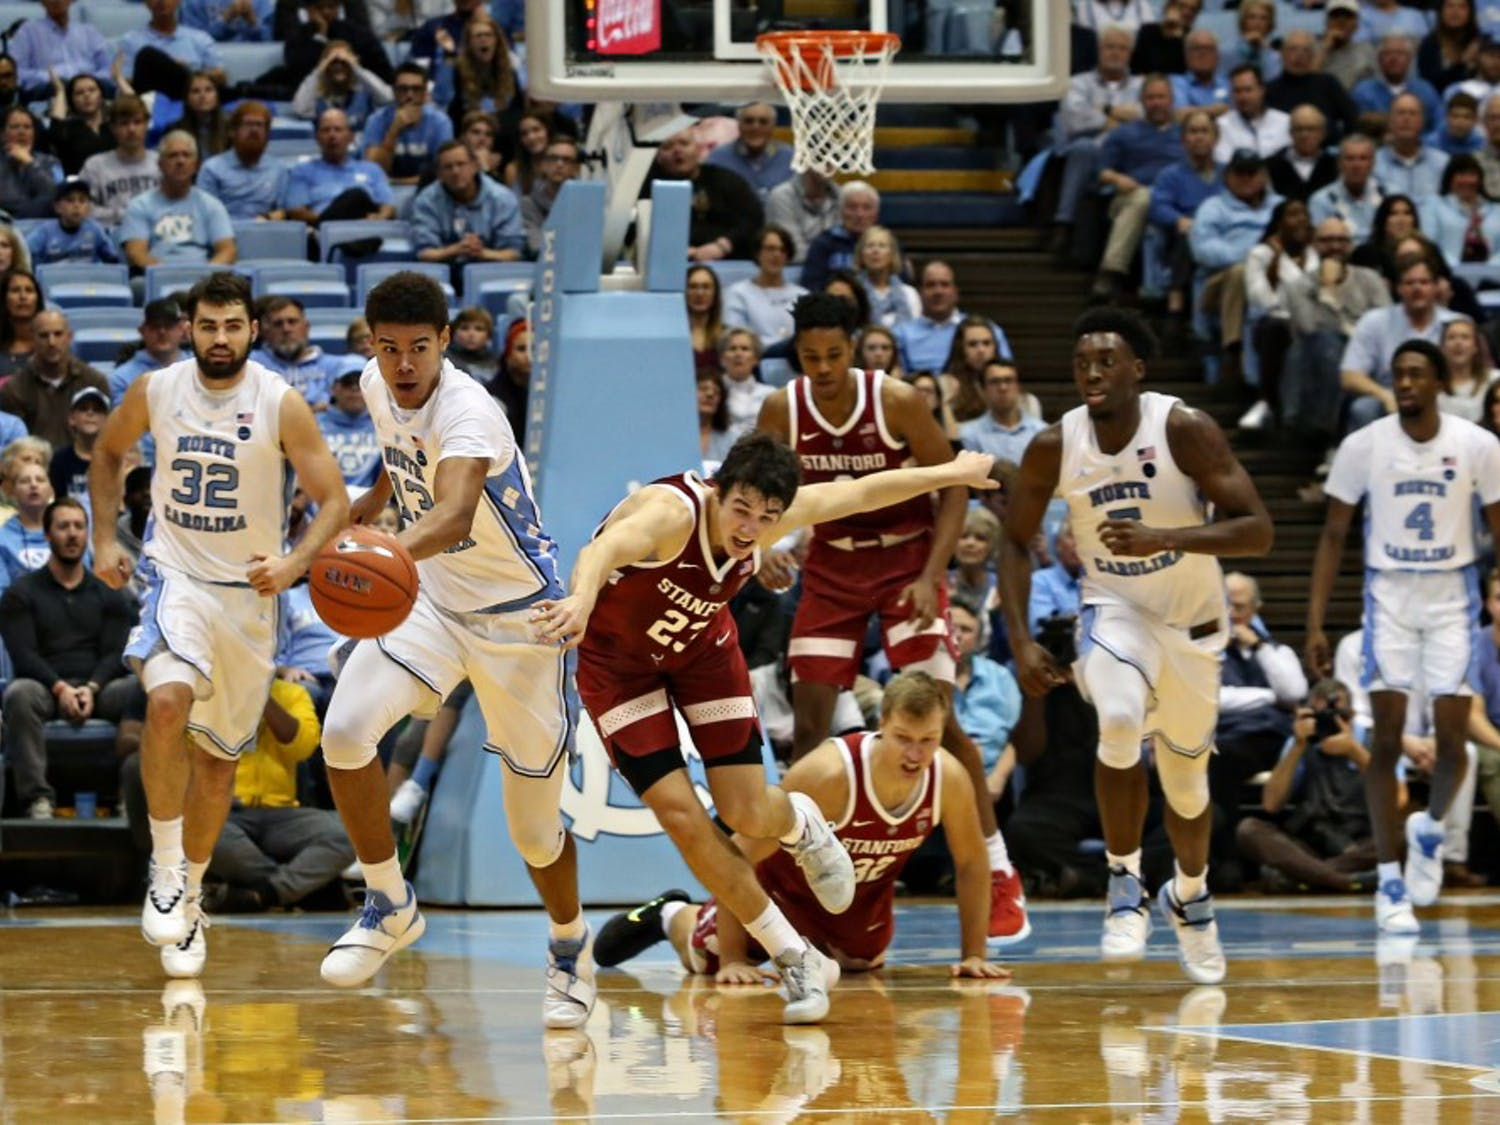 UNC guard Cameron Jonson (13) breaks past Stanford players in the Dean Smith Center on Monday, Nov. 12, 2018. UNC won 90-72.